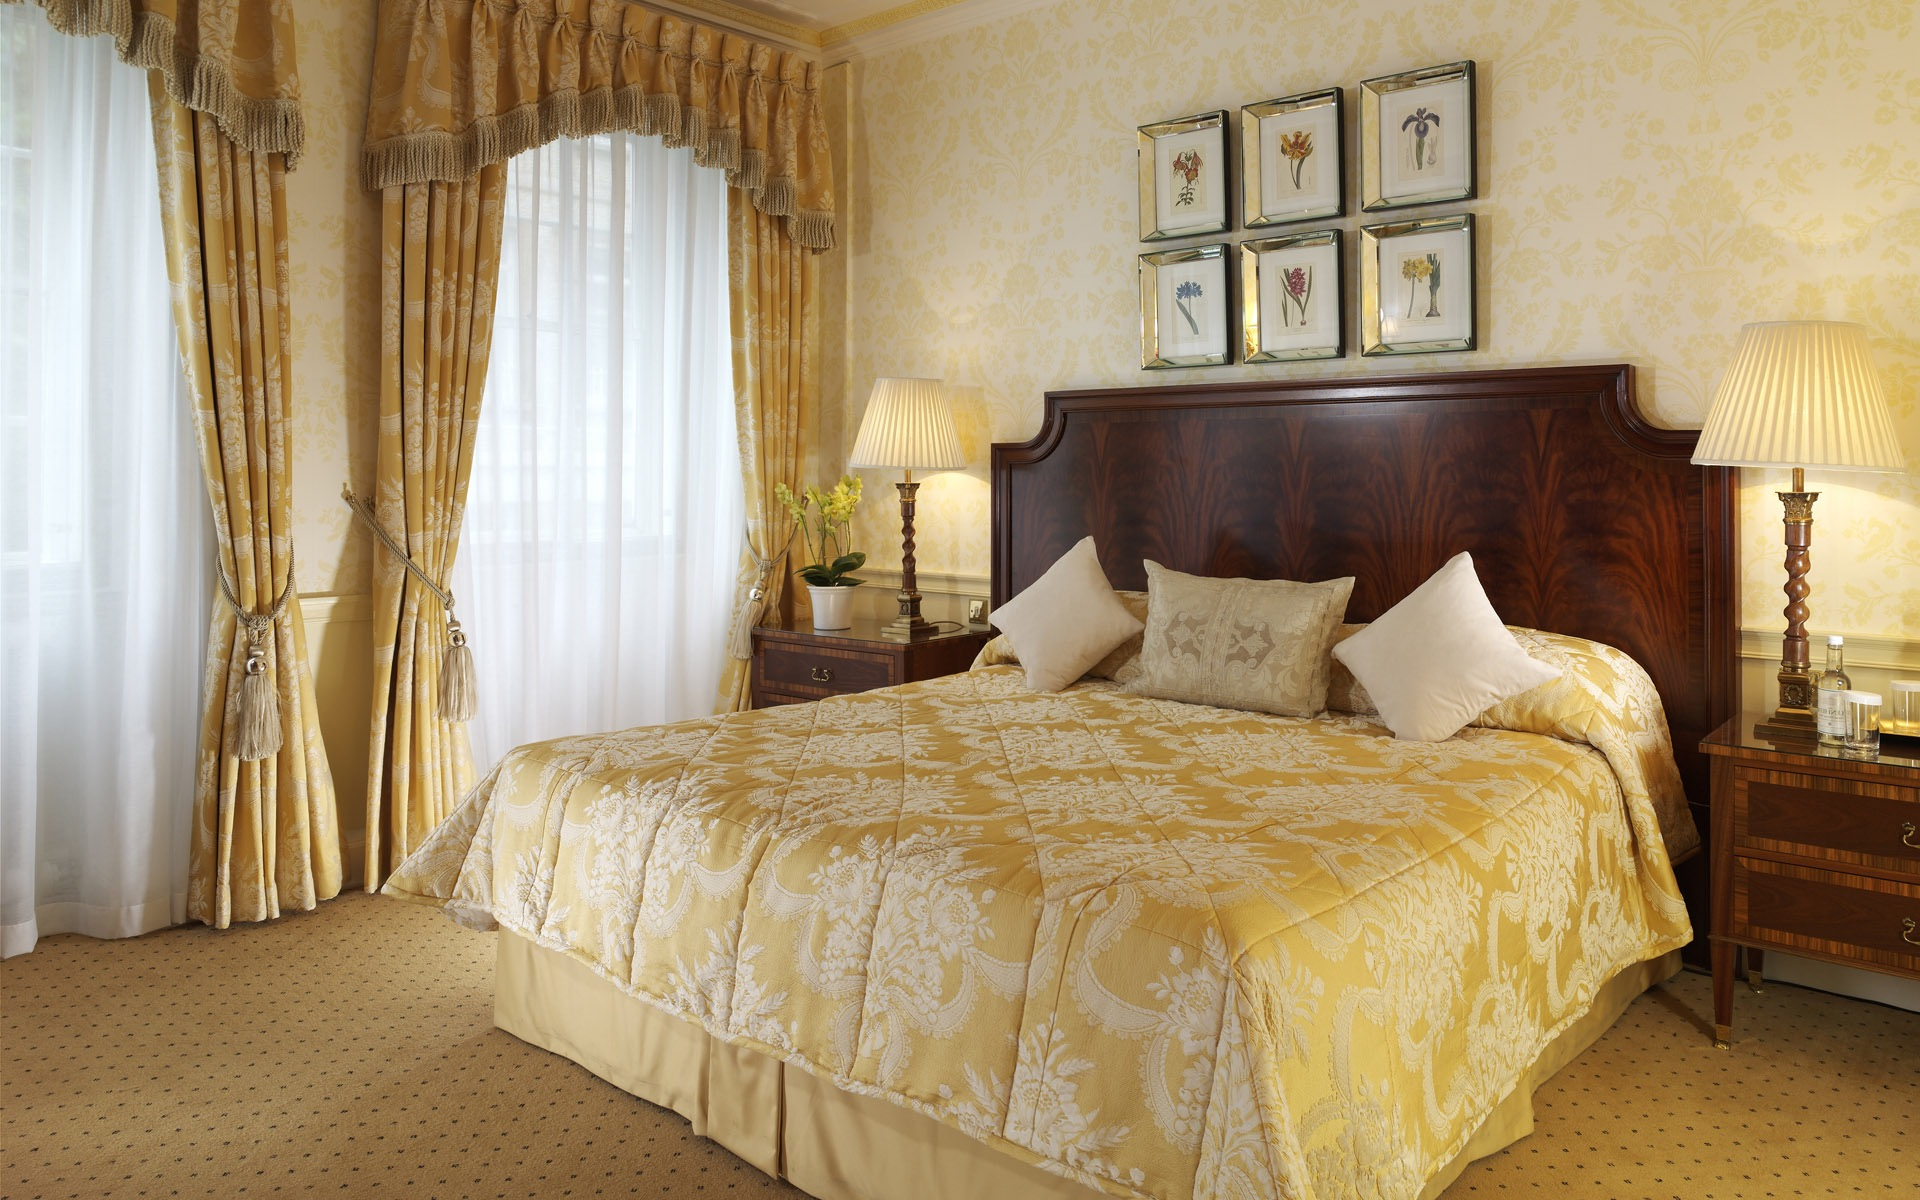 Classic Bedroom With Gorgeous Lace Curtains Decor (View 5 of 20)